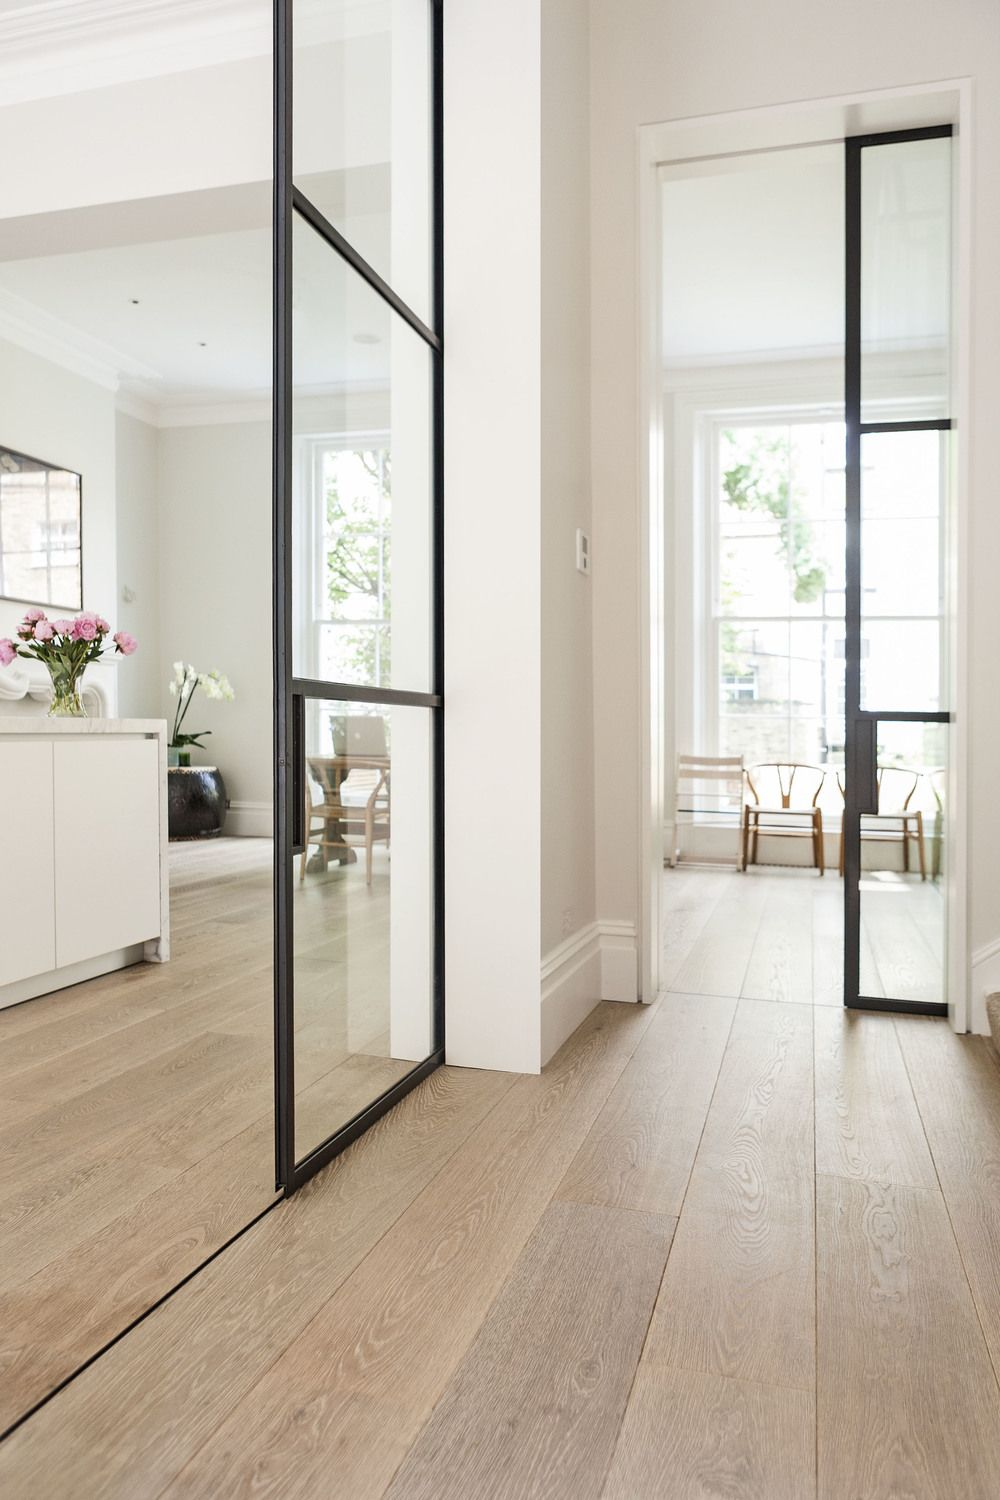 integrated floor channel oak floorsglass pocket doorswhite